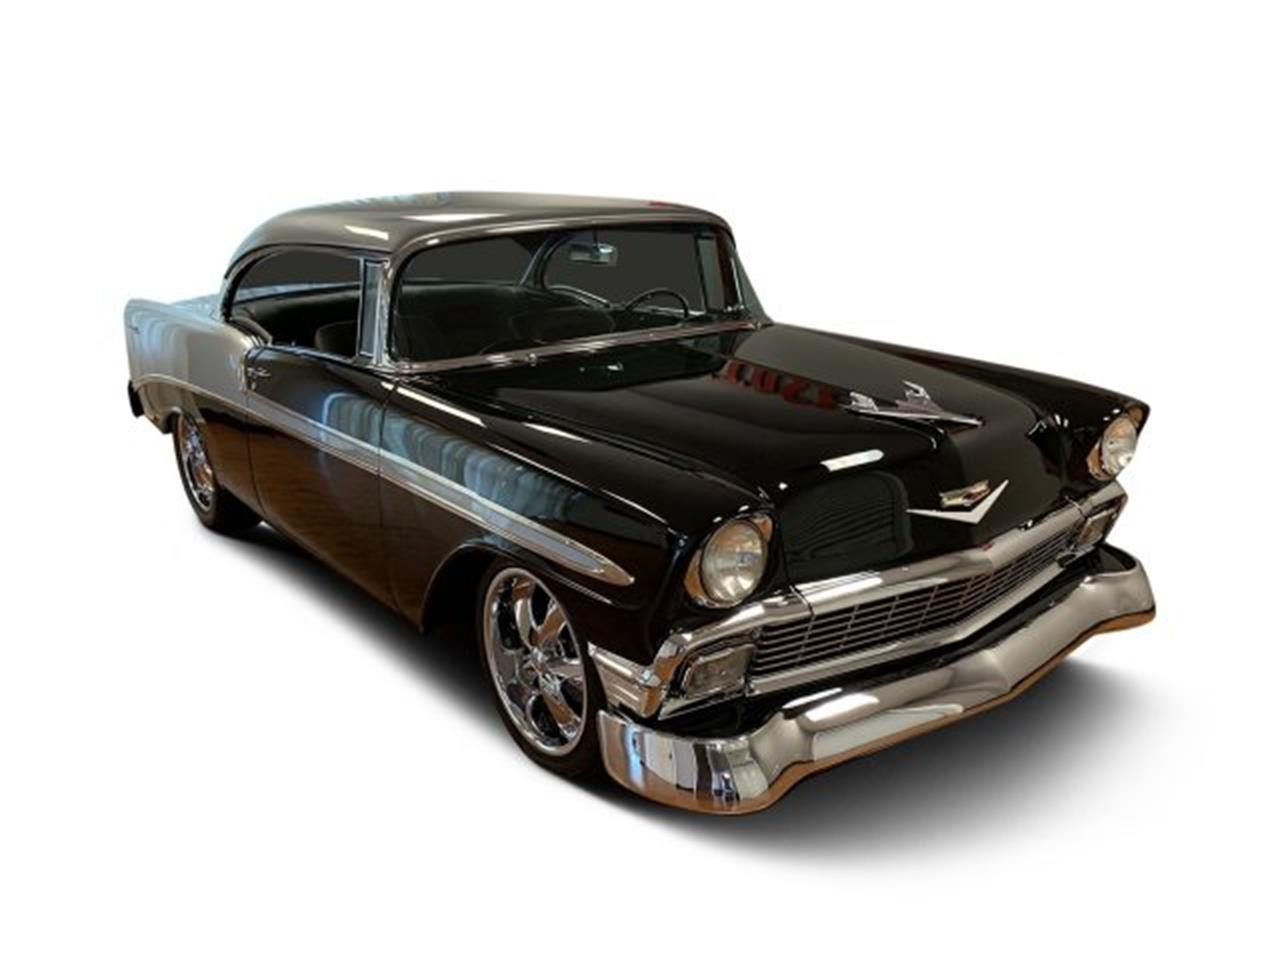 Large Picture of '56 Chevrolet Bel Air located in West Palm Beach Florida Offered by AutoSport USA - PZIN